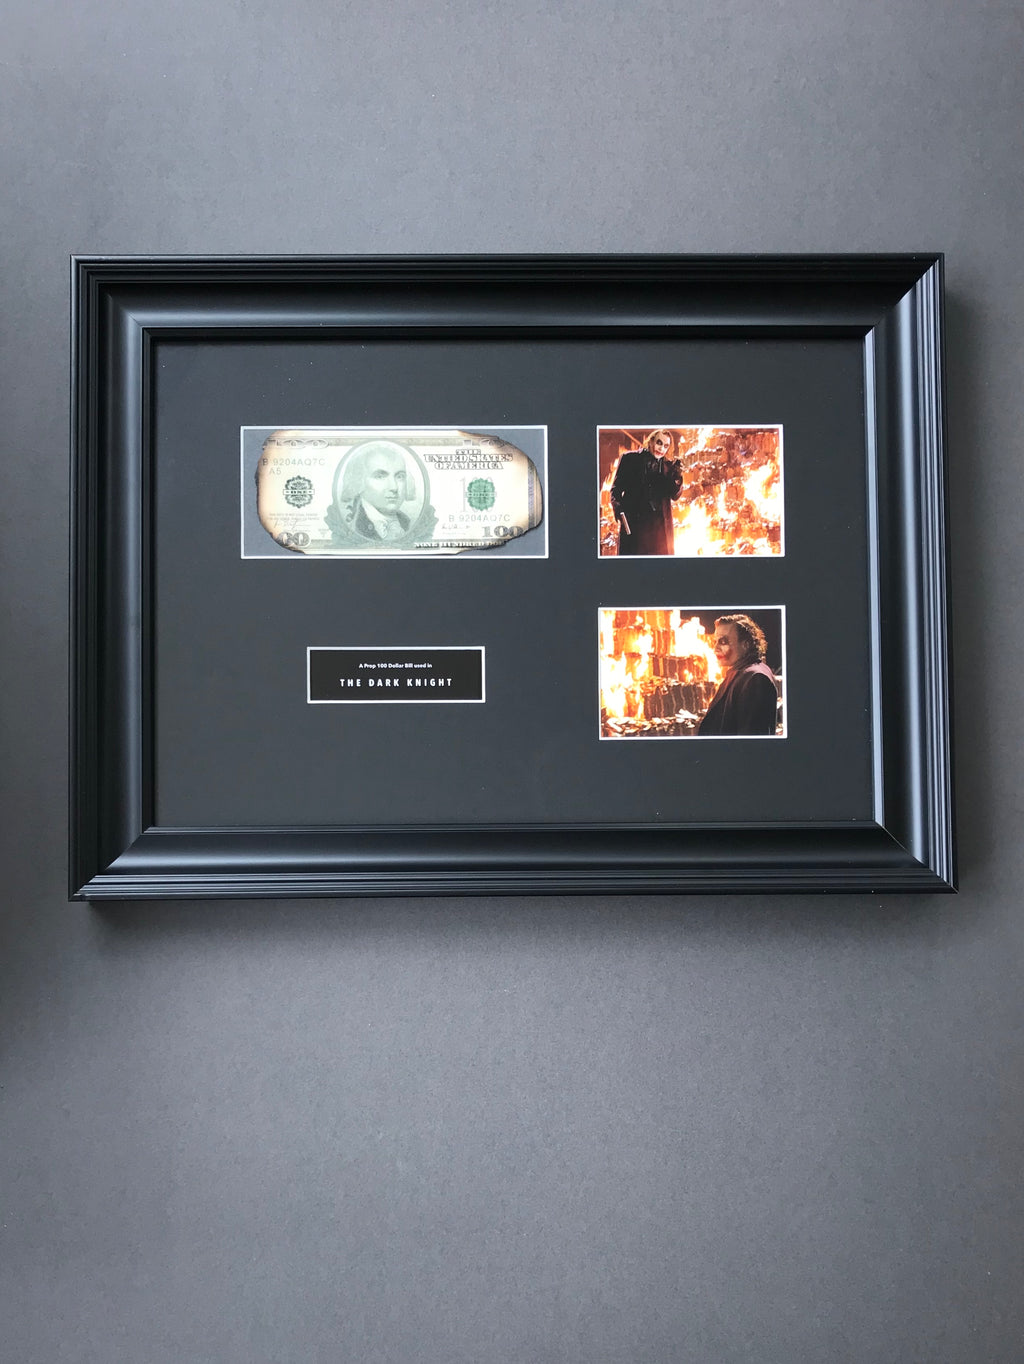 The Dark Knight (2008) - A Prop Burnt 100 Dollar Bill (SOLD)